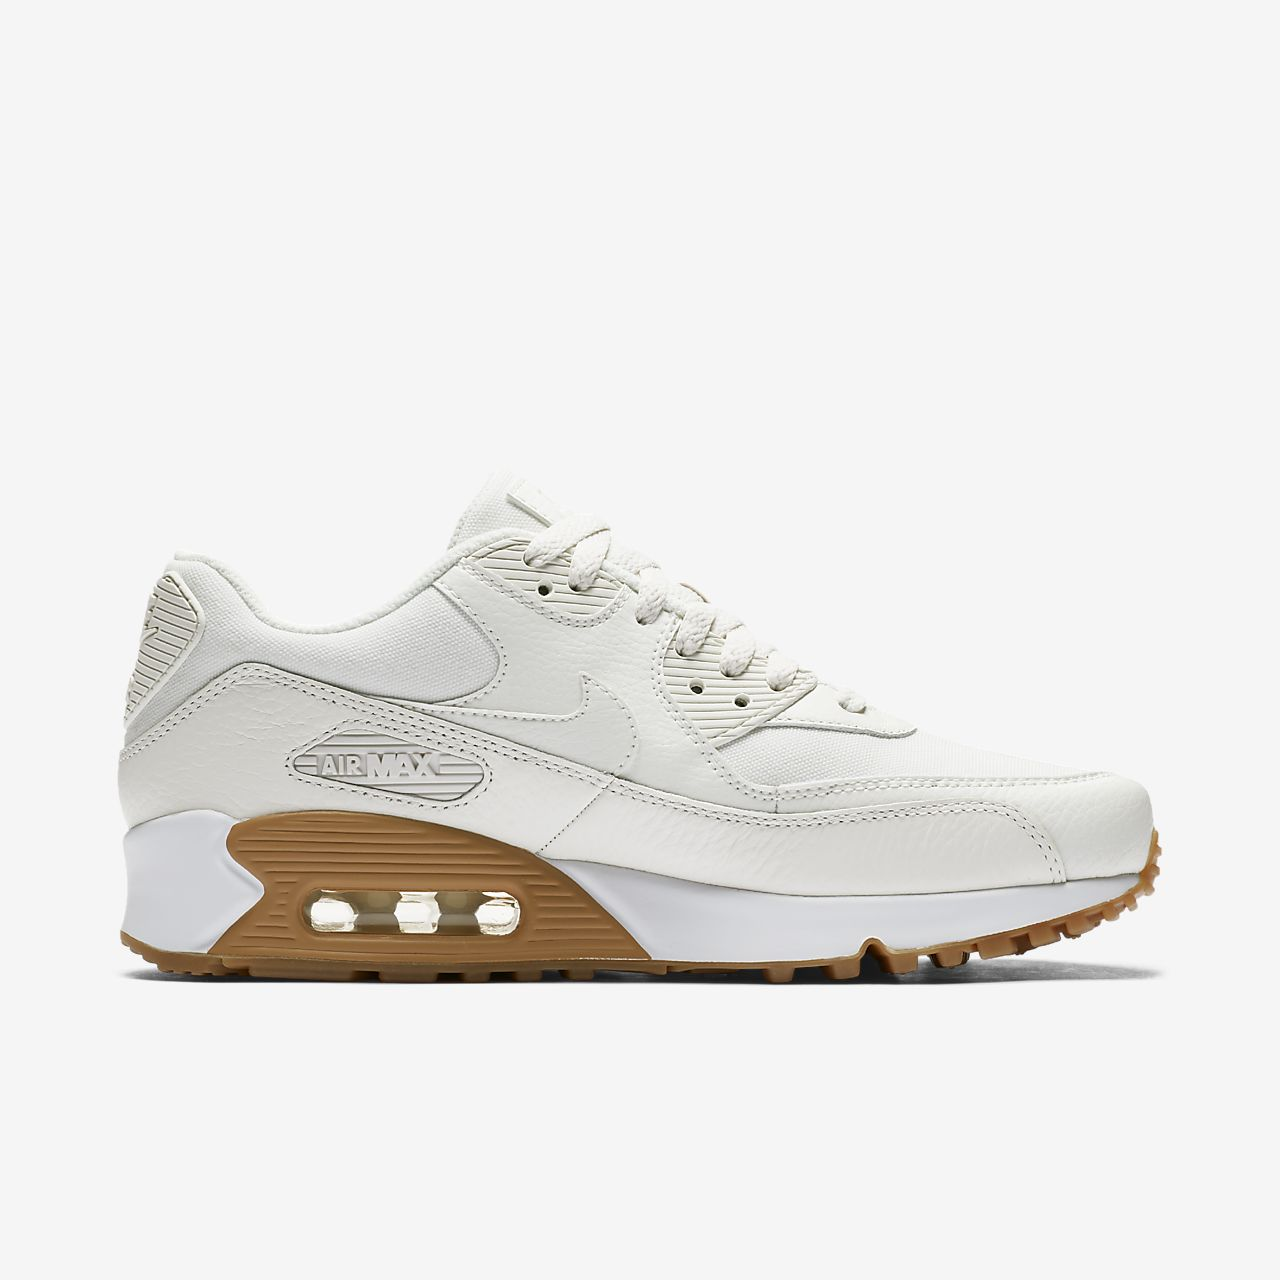 Amazone Discount La Sortie Offres Nike Chaussures  Air Max 90